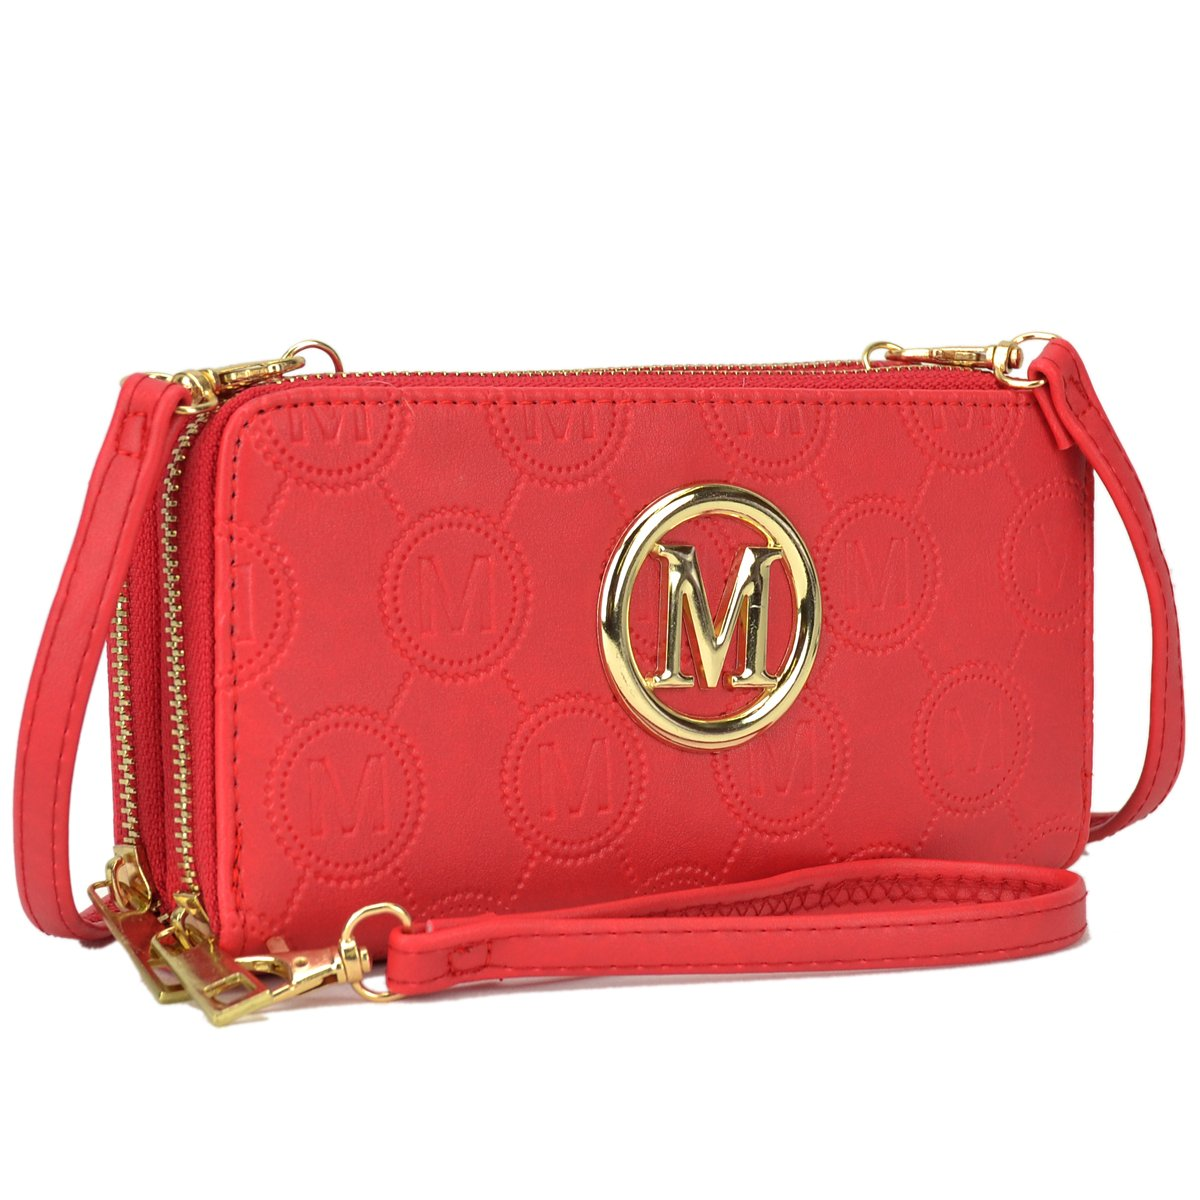 1083 Coral Functional Lightweight Crossbody bags for Women Simple Double Zip Around Should Bags Wallet Card Case Holder Organizer